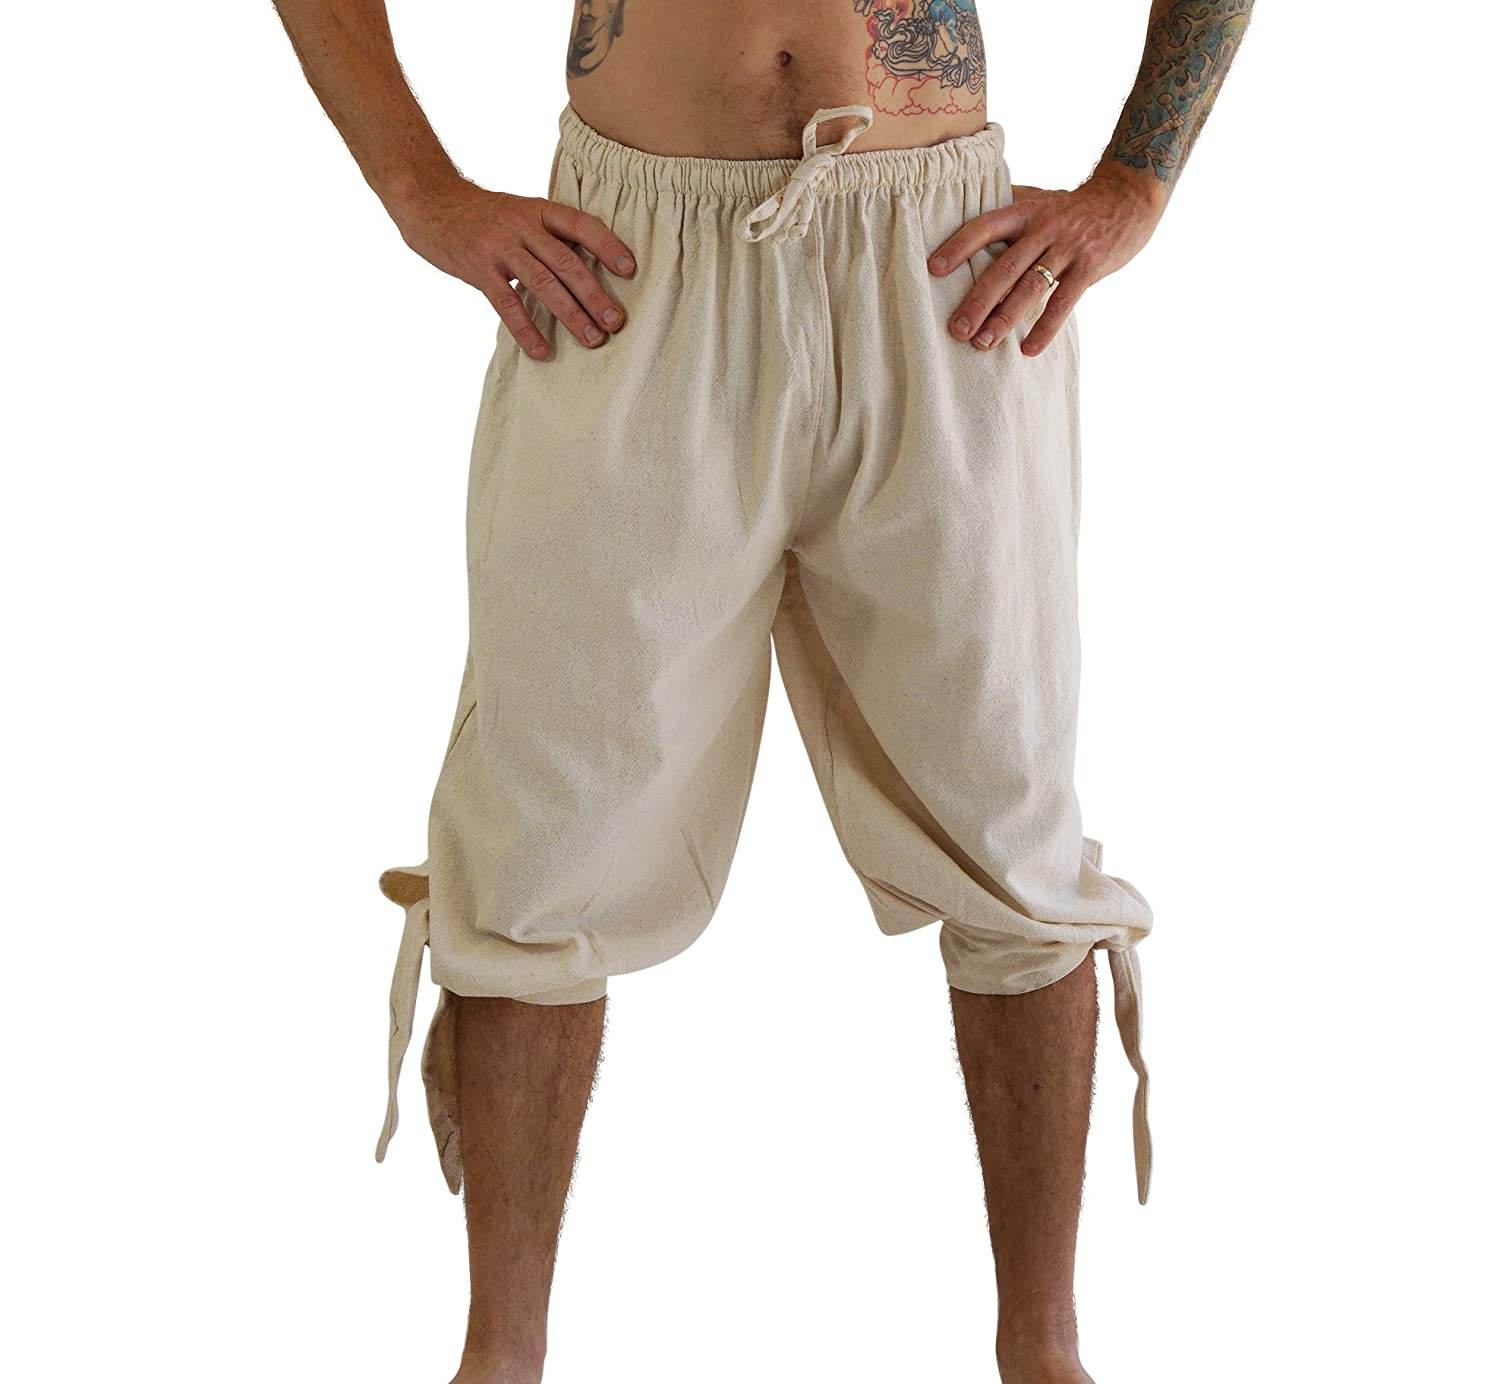 'Buccaneer' Pirate Costume Pants, Renaissance Clothing - Natural/Off White